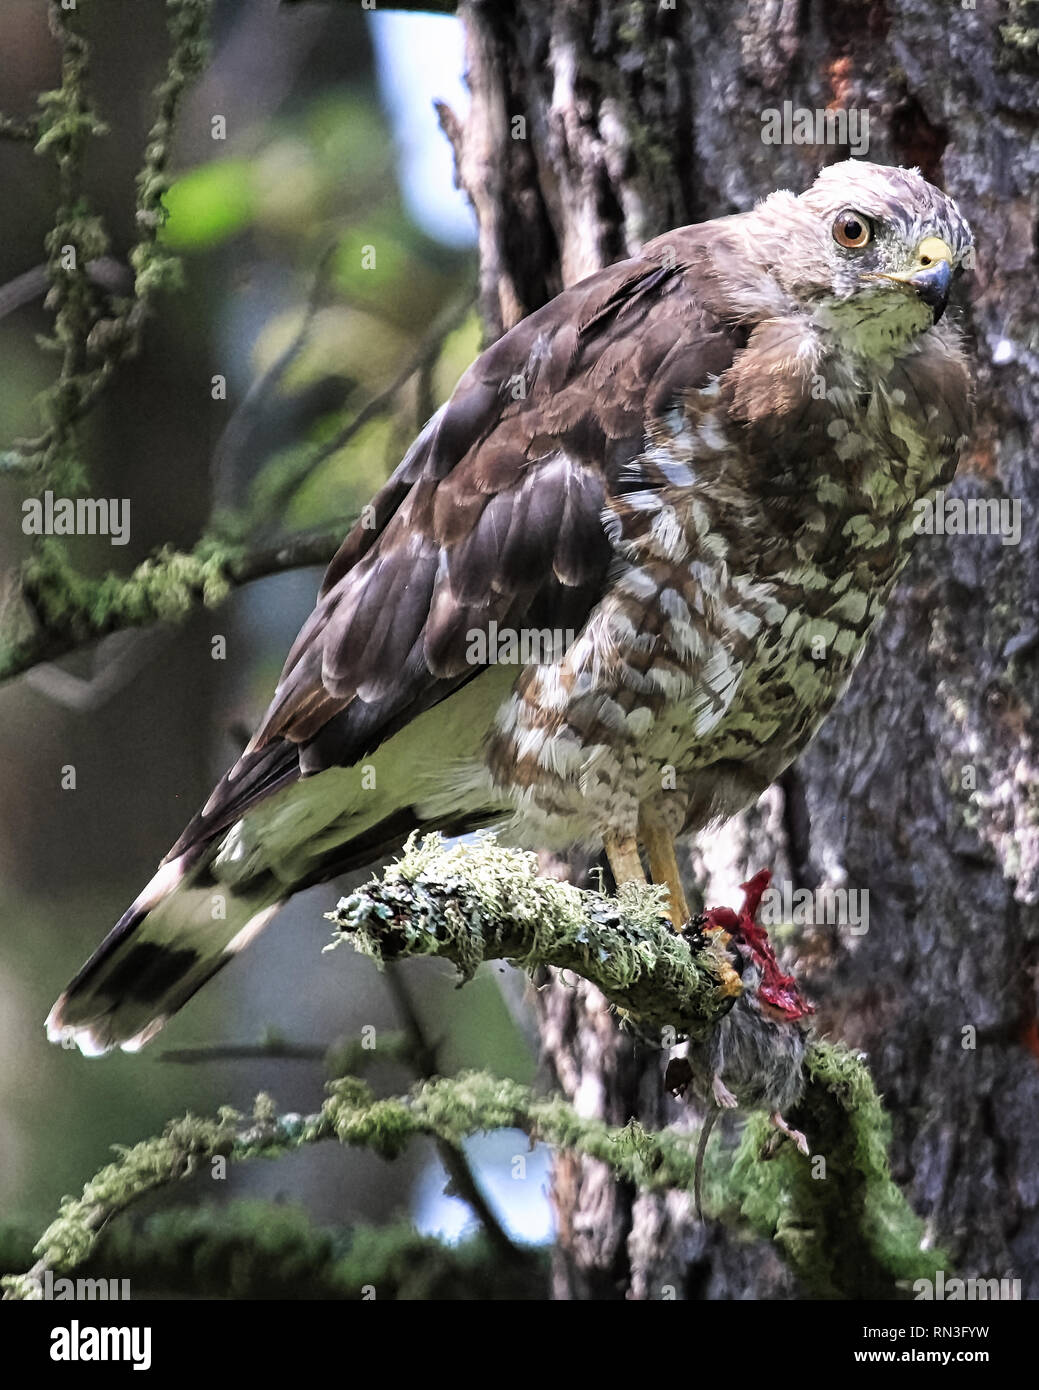 A broad-winged Hawk sits on a branch with a mouse in its talons - Stock Image